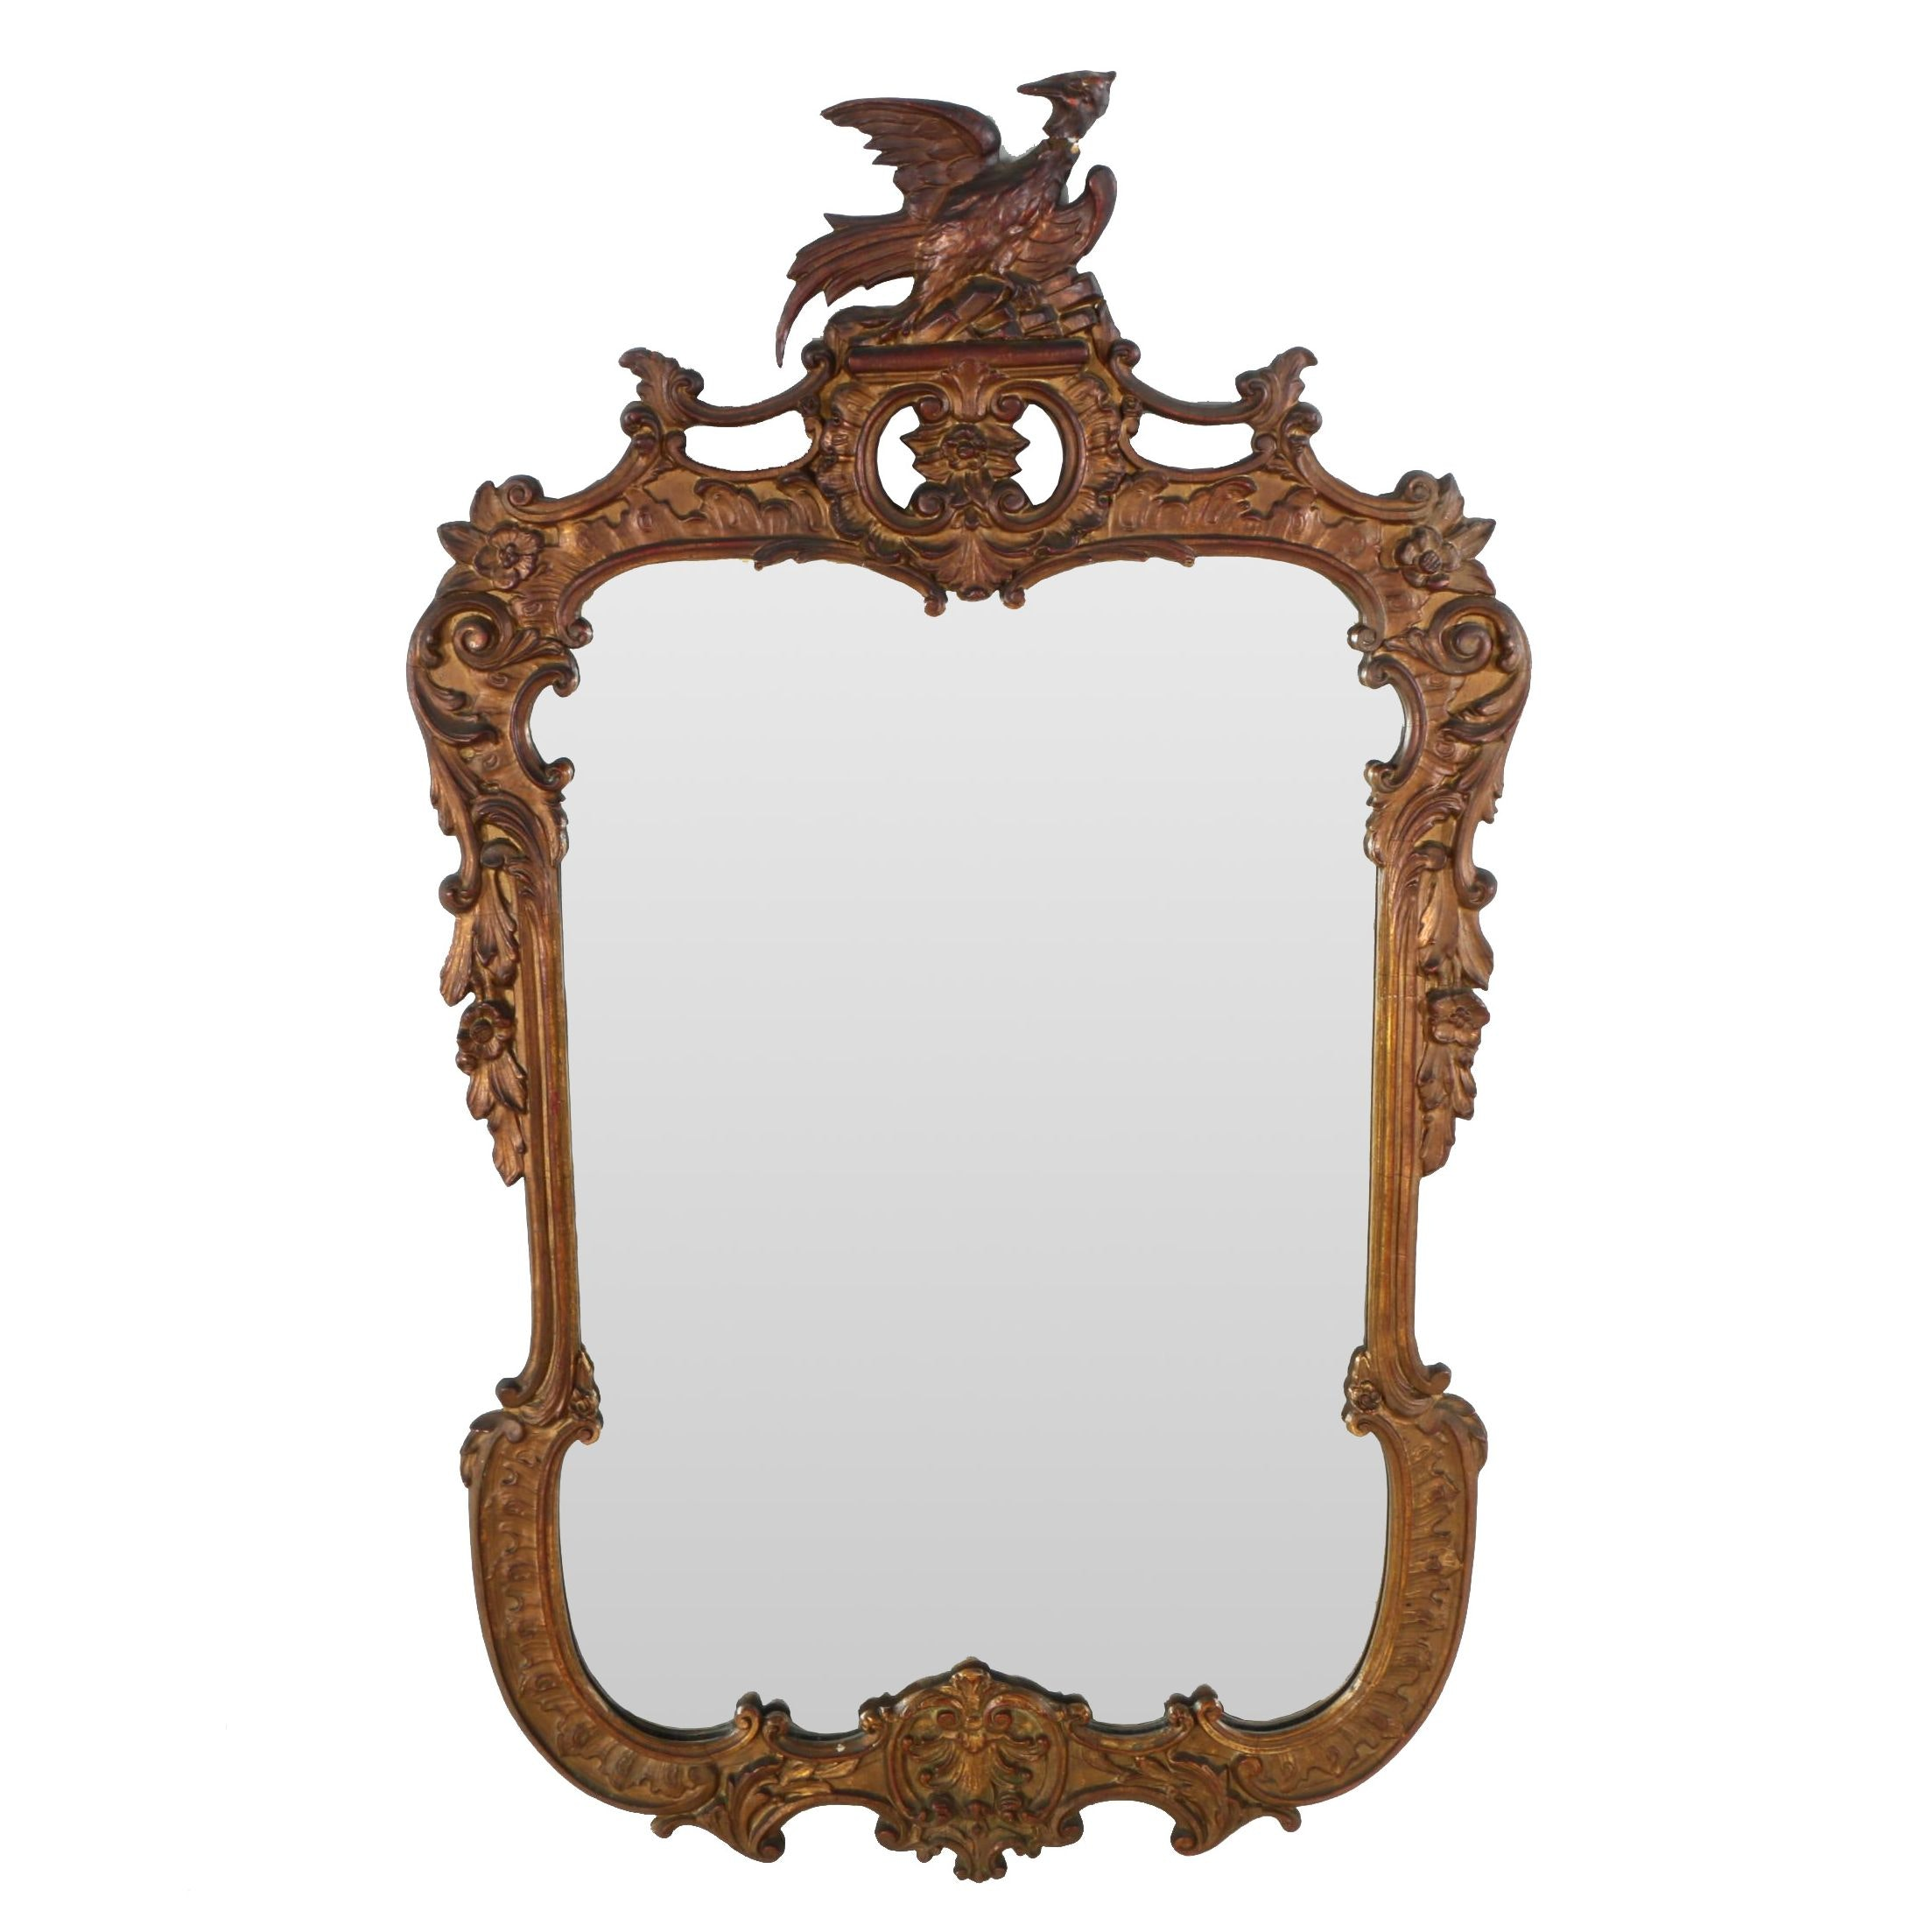 George III Style Giltwood Mirror, Late 19th/Early 20th Century